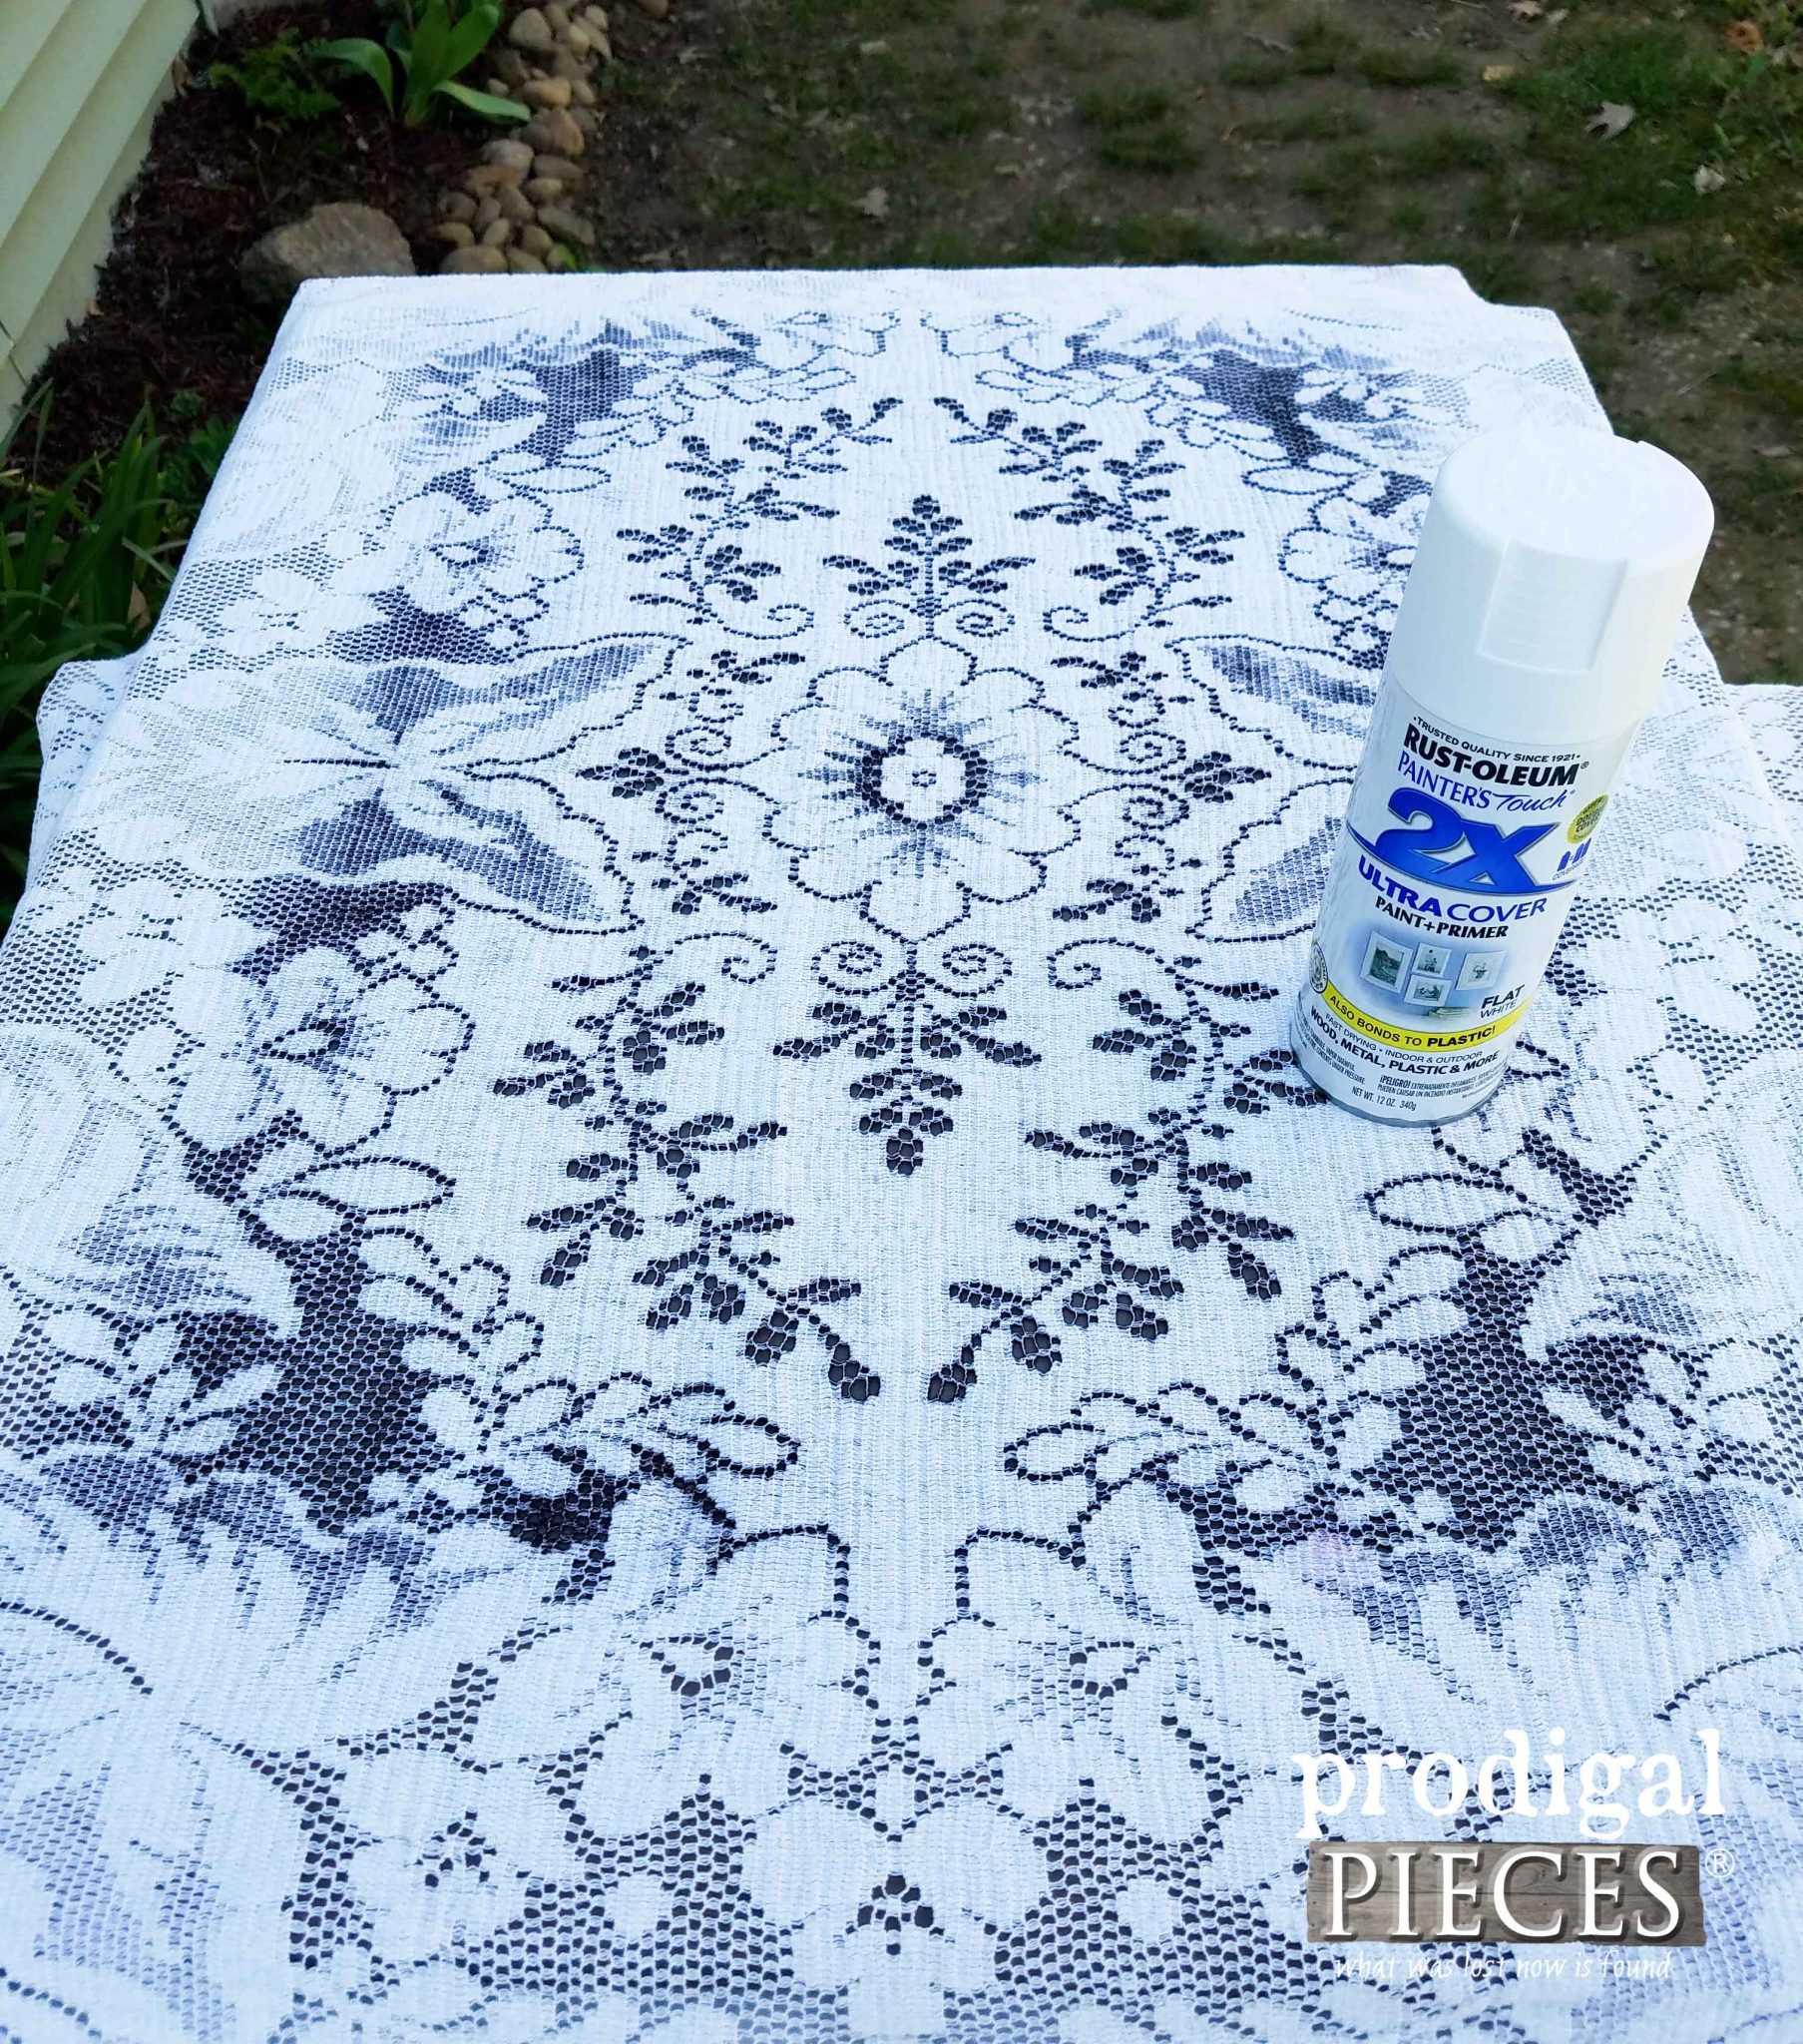 Using Vintage Lace to Paint Tea Cart | Prodigal Pieces | prodigalpieces.com